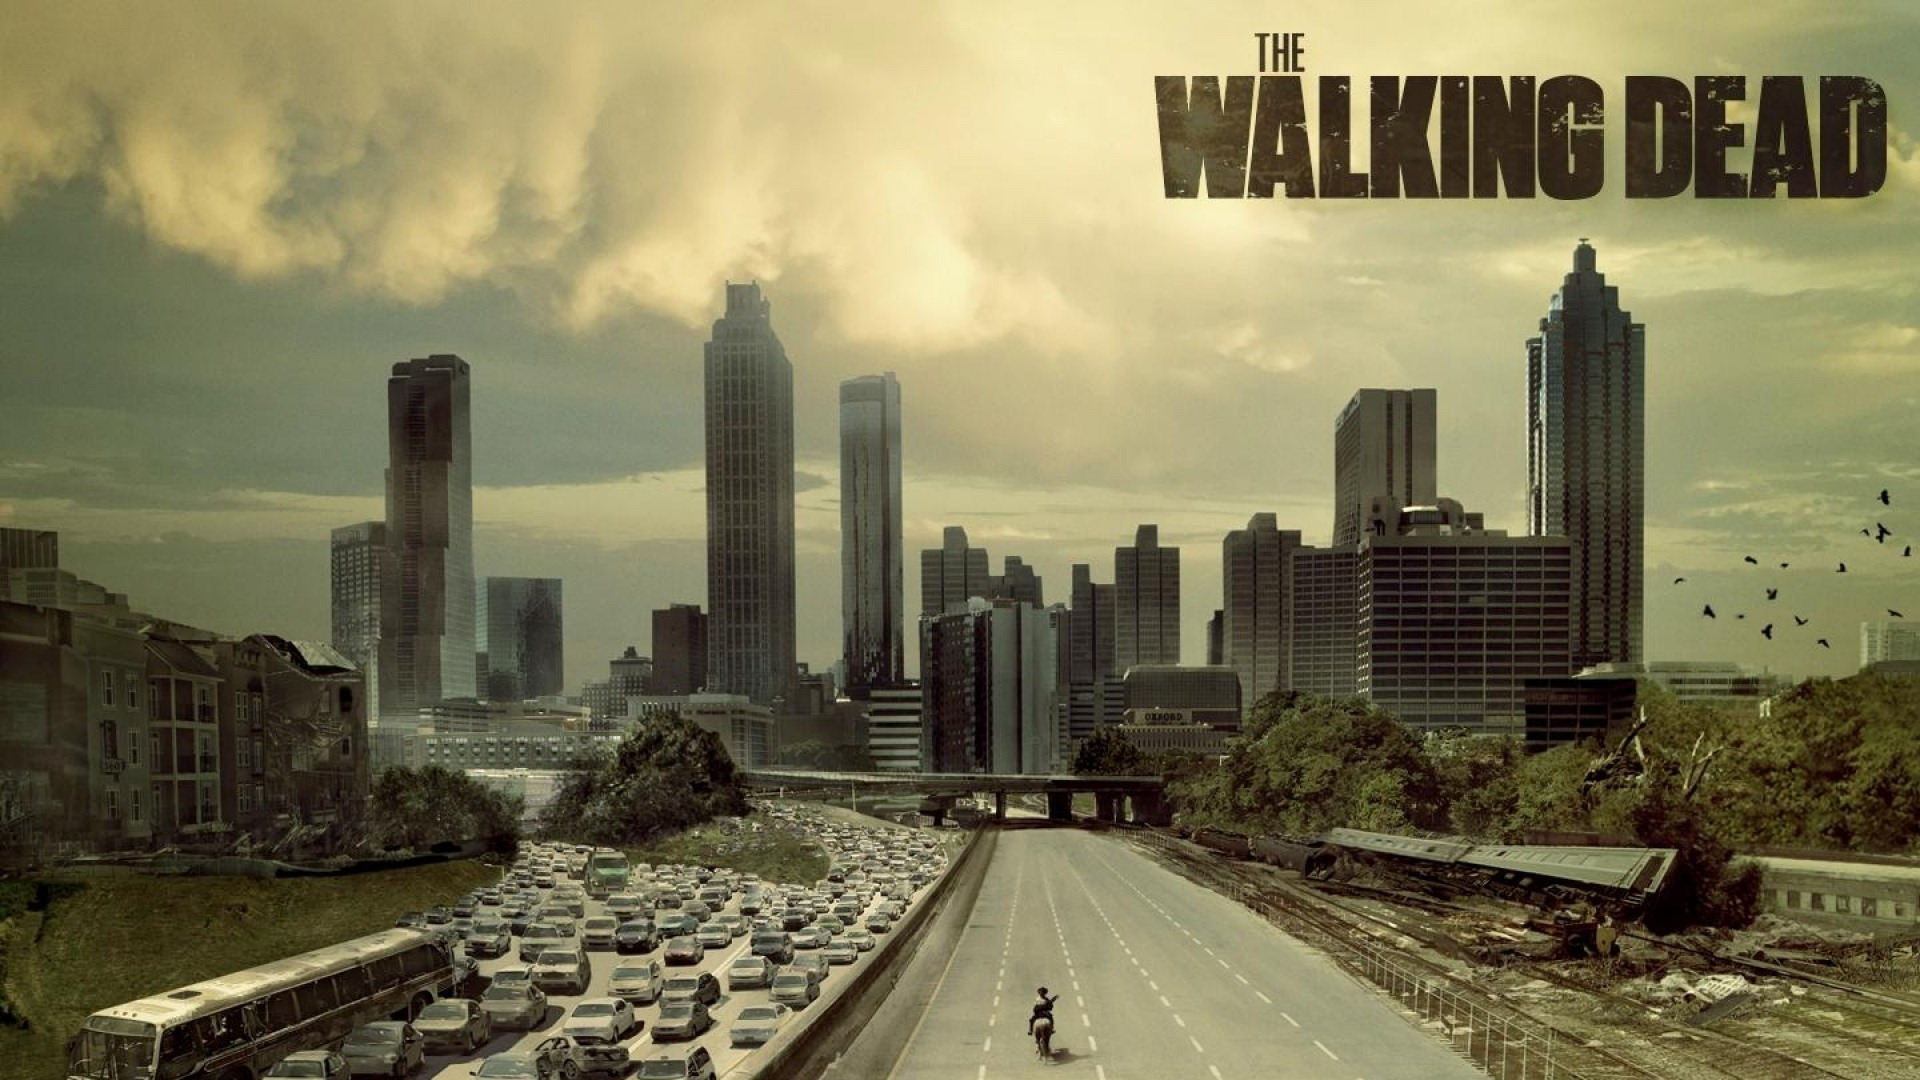 The Walking Dead wallpaper 12